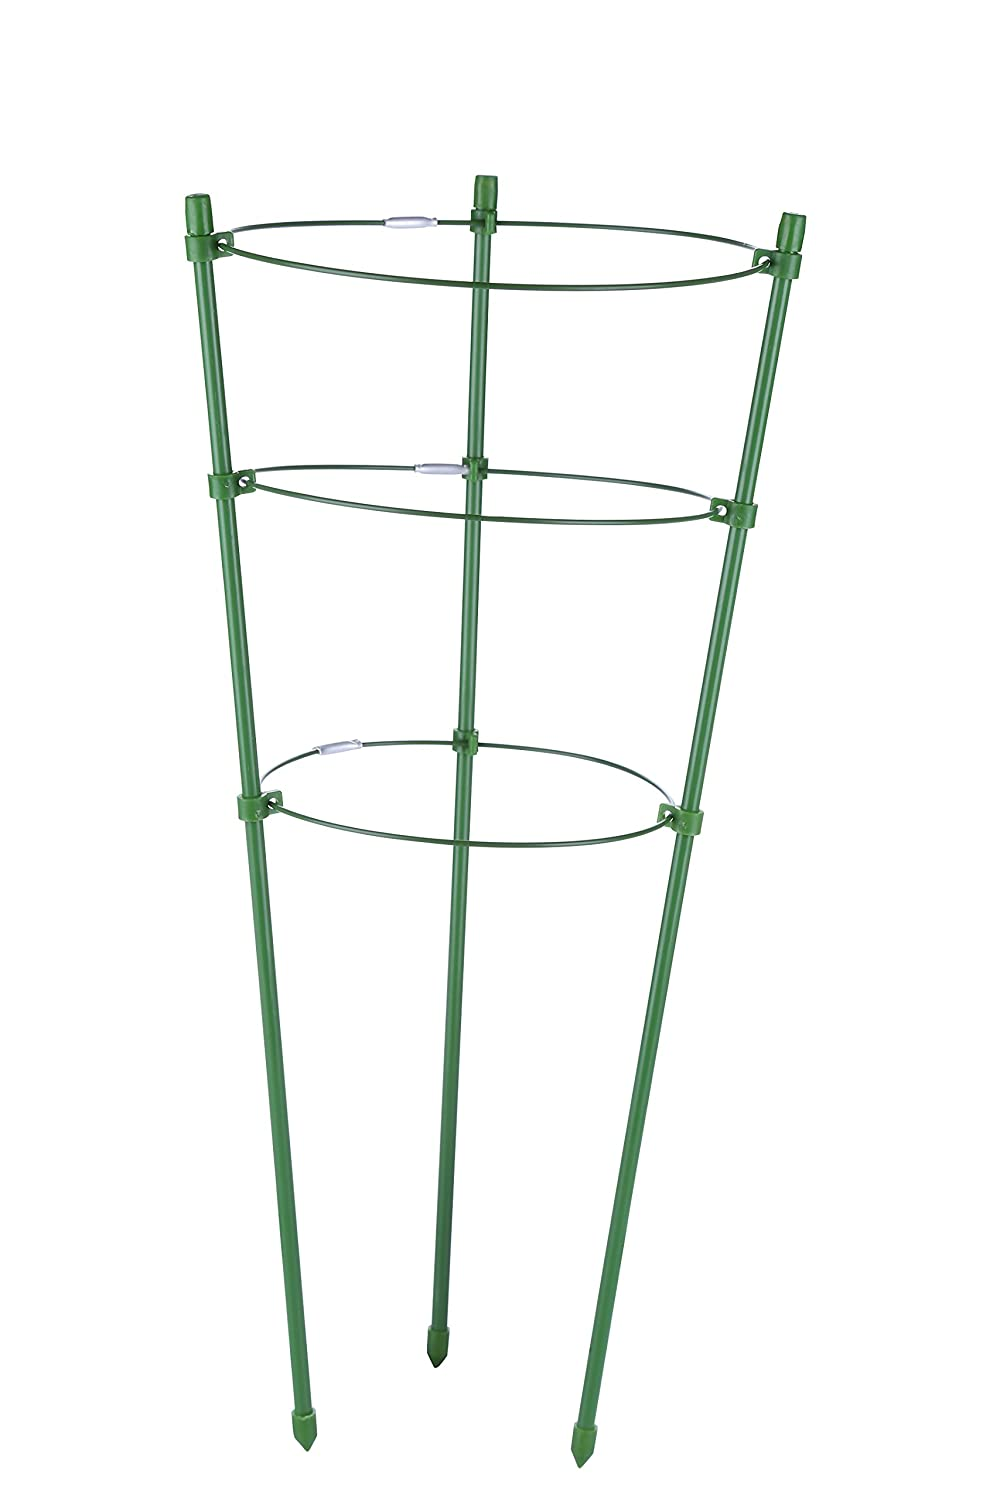 "I-MART Tomato and Plant Support Cage, Stakes, Trellis, Gardening Climbing Growing Cages with Adjustable Rings (17.7"" H, 3 Rings)"